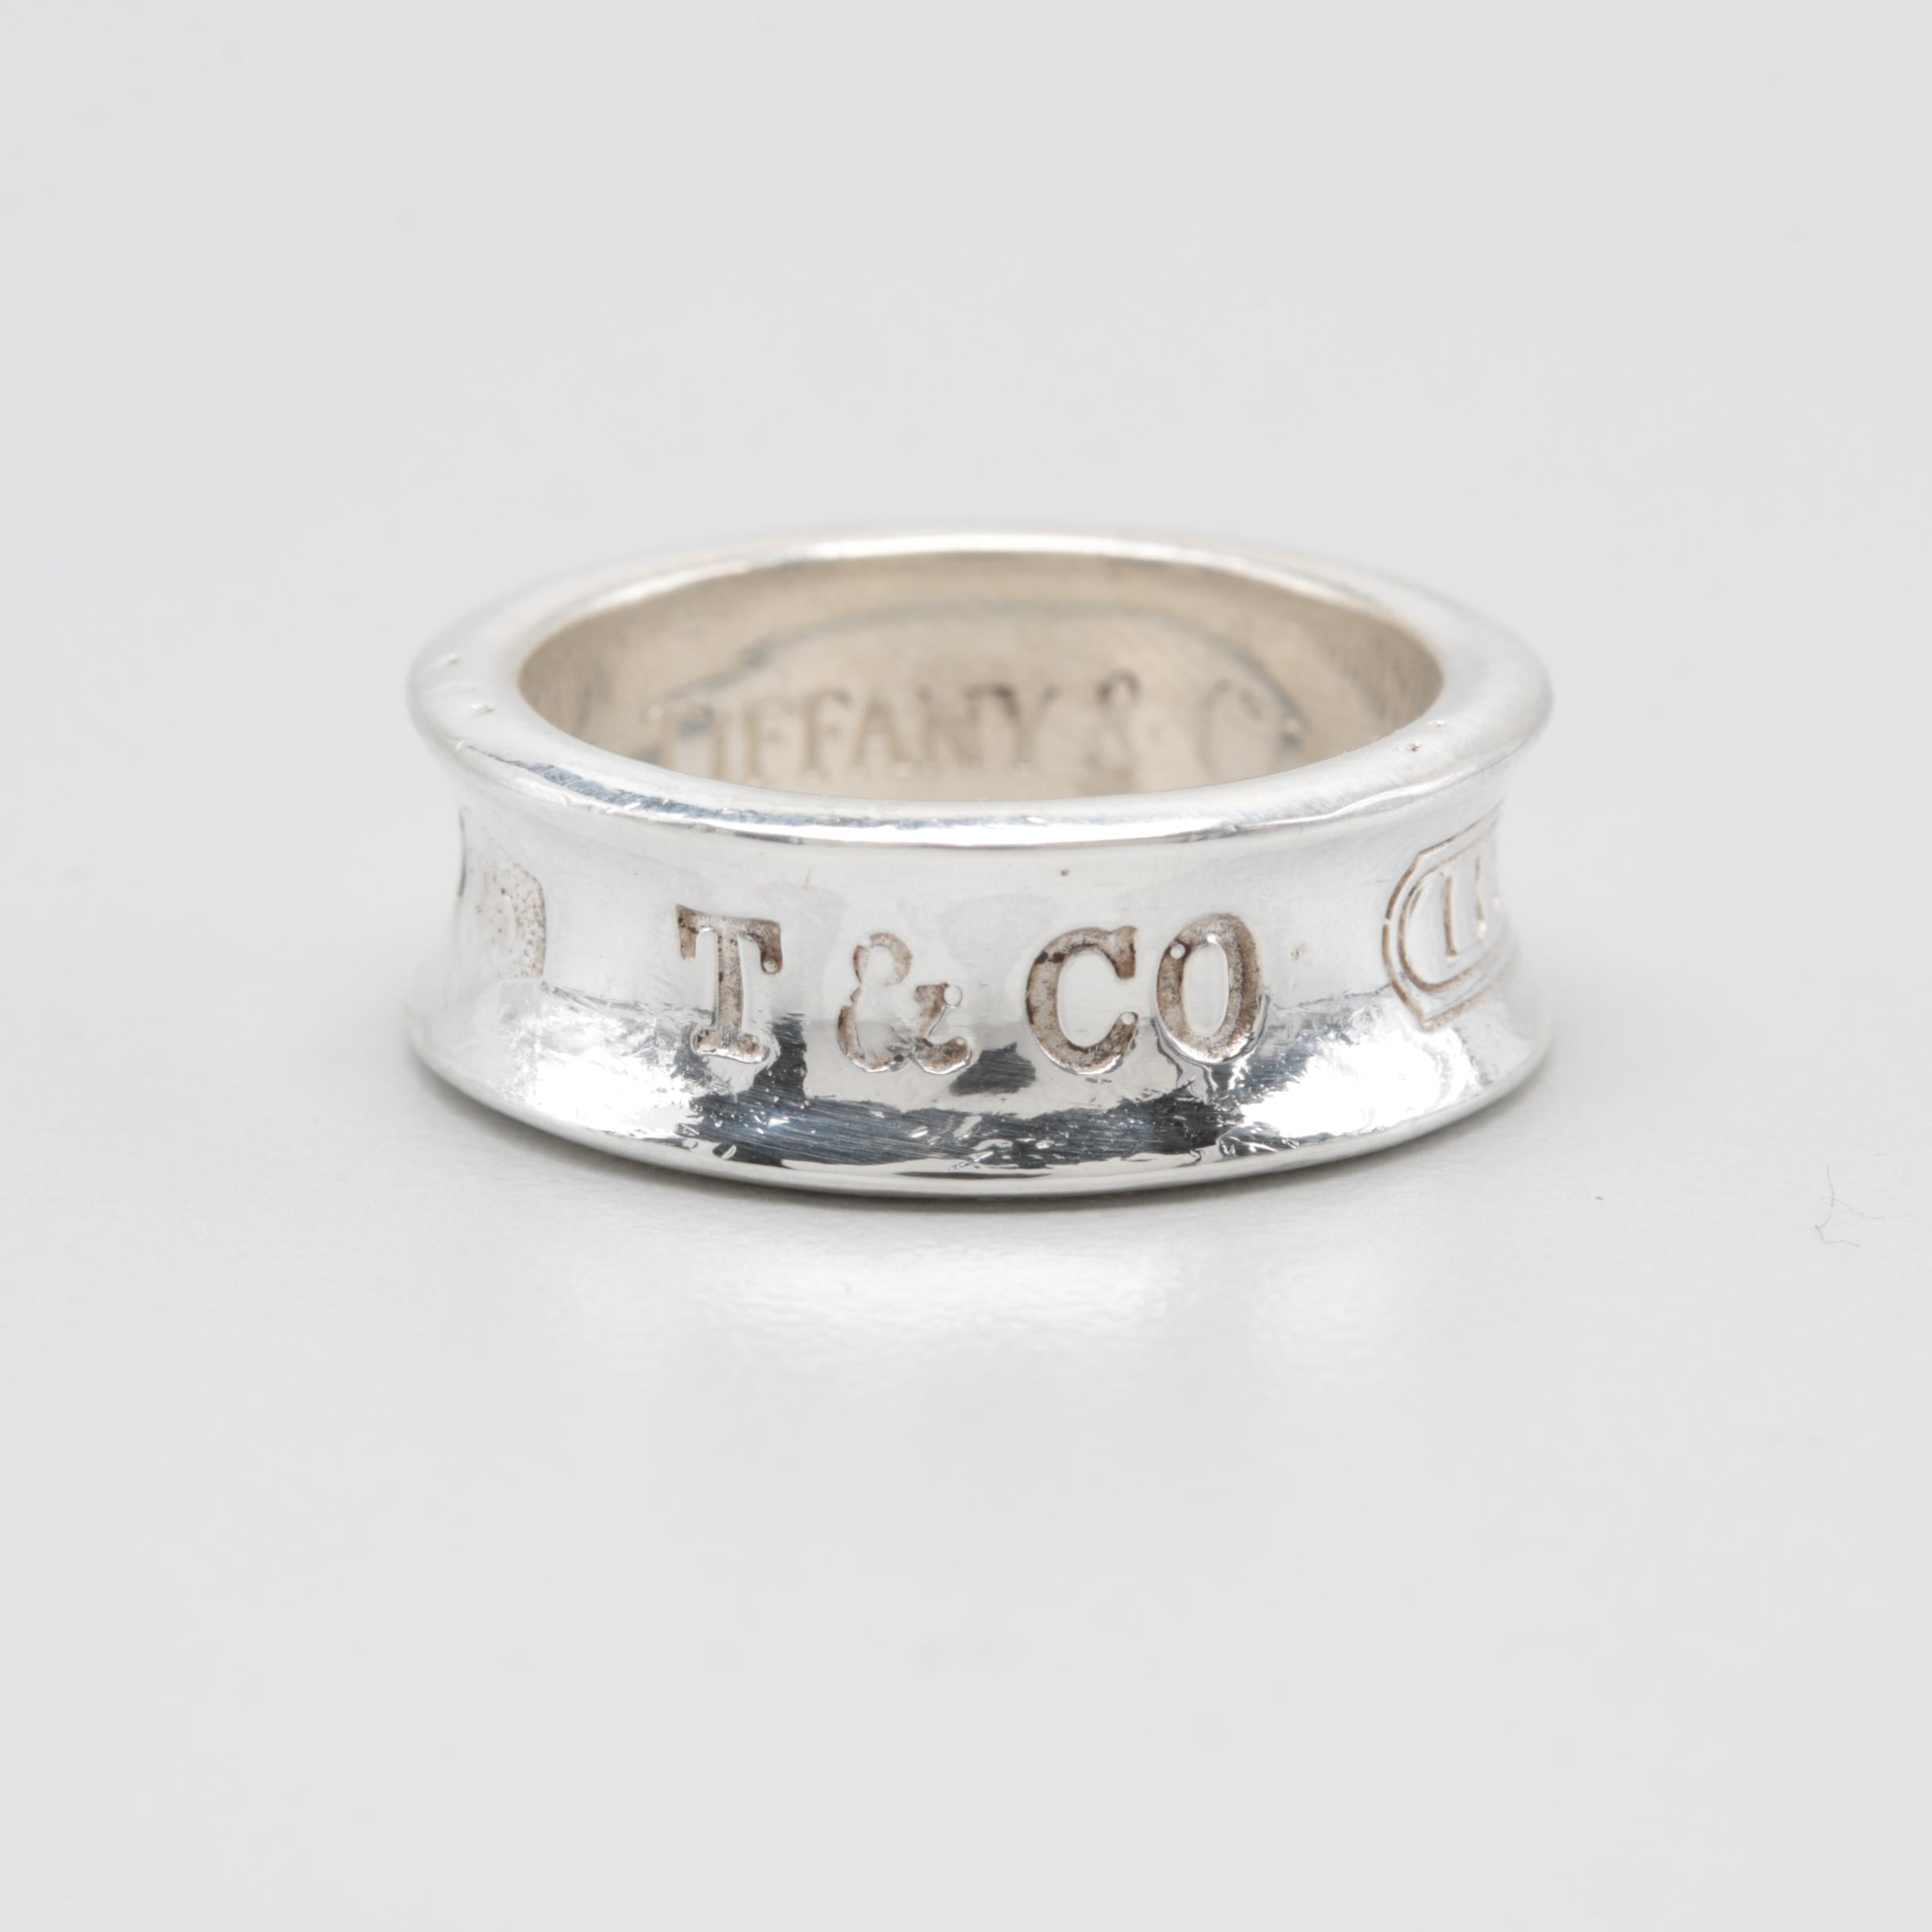 "Circa 1997 Tiffany & Co. ""1837"" Sterling Silver Ring"